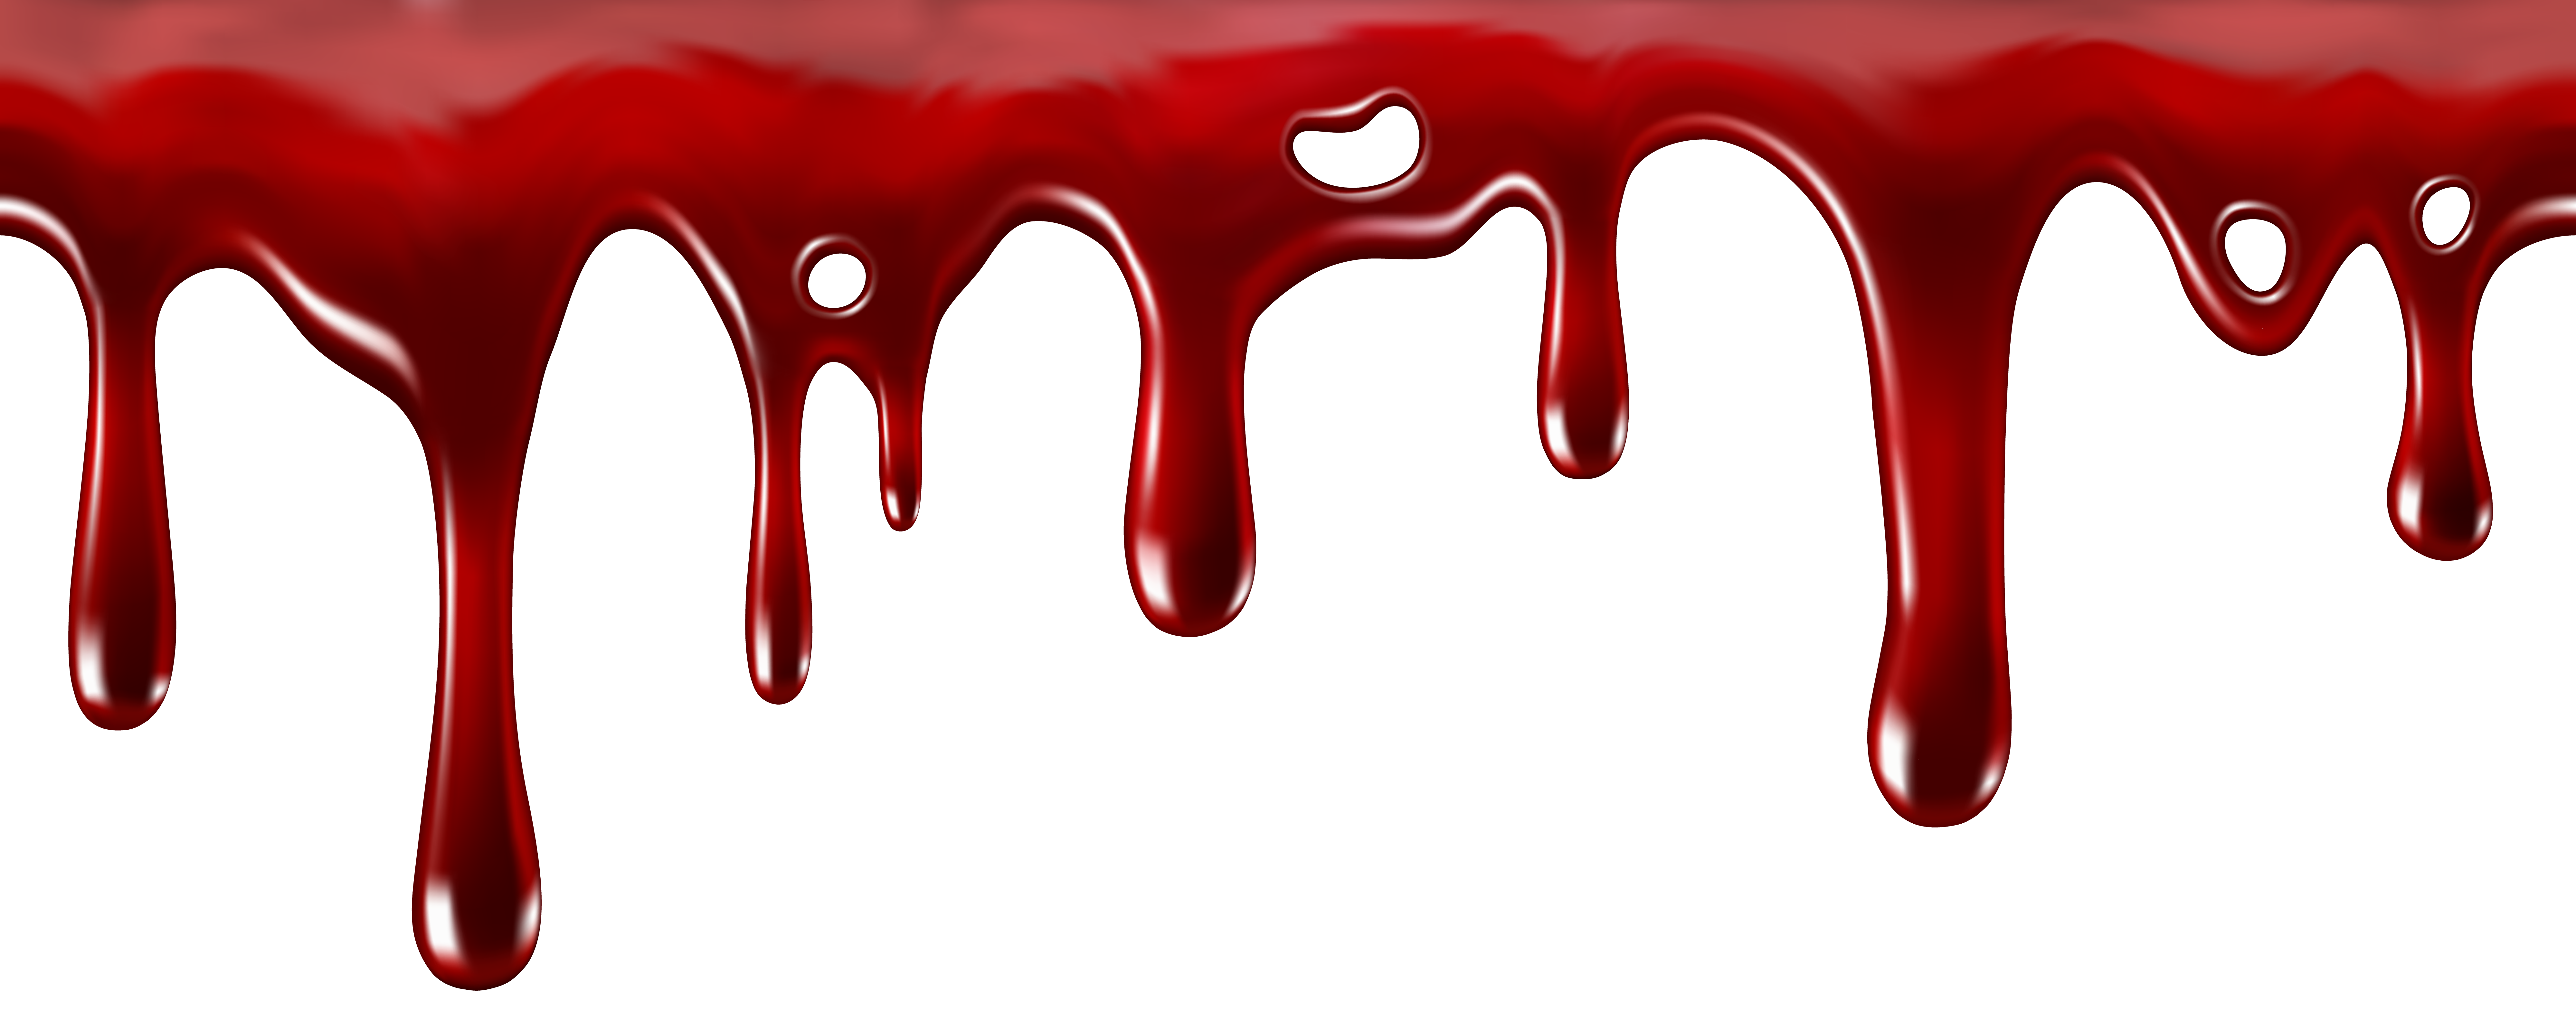 Blood Dripping - ClipArt Best